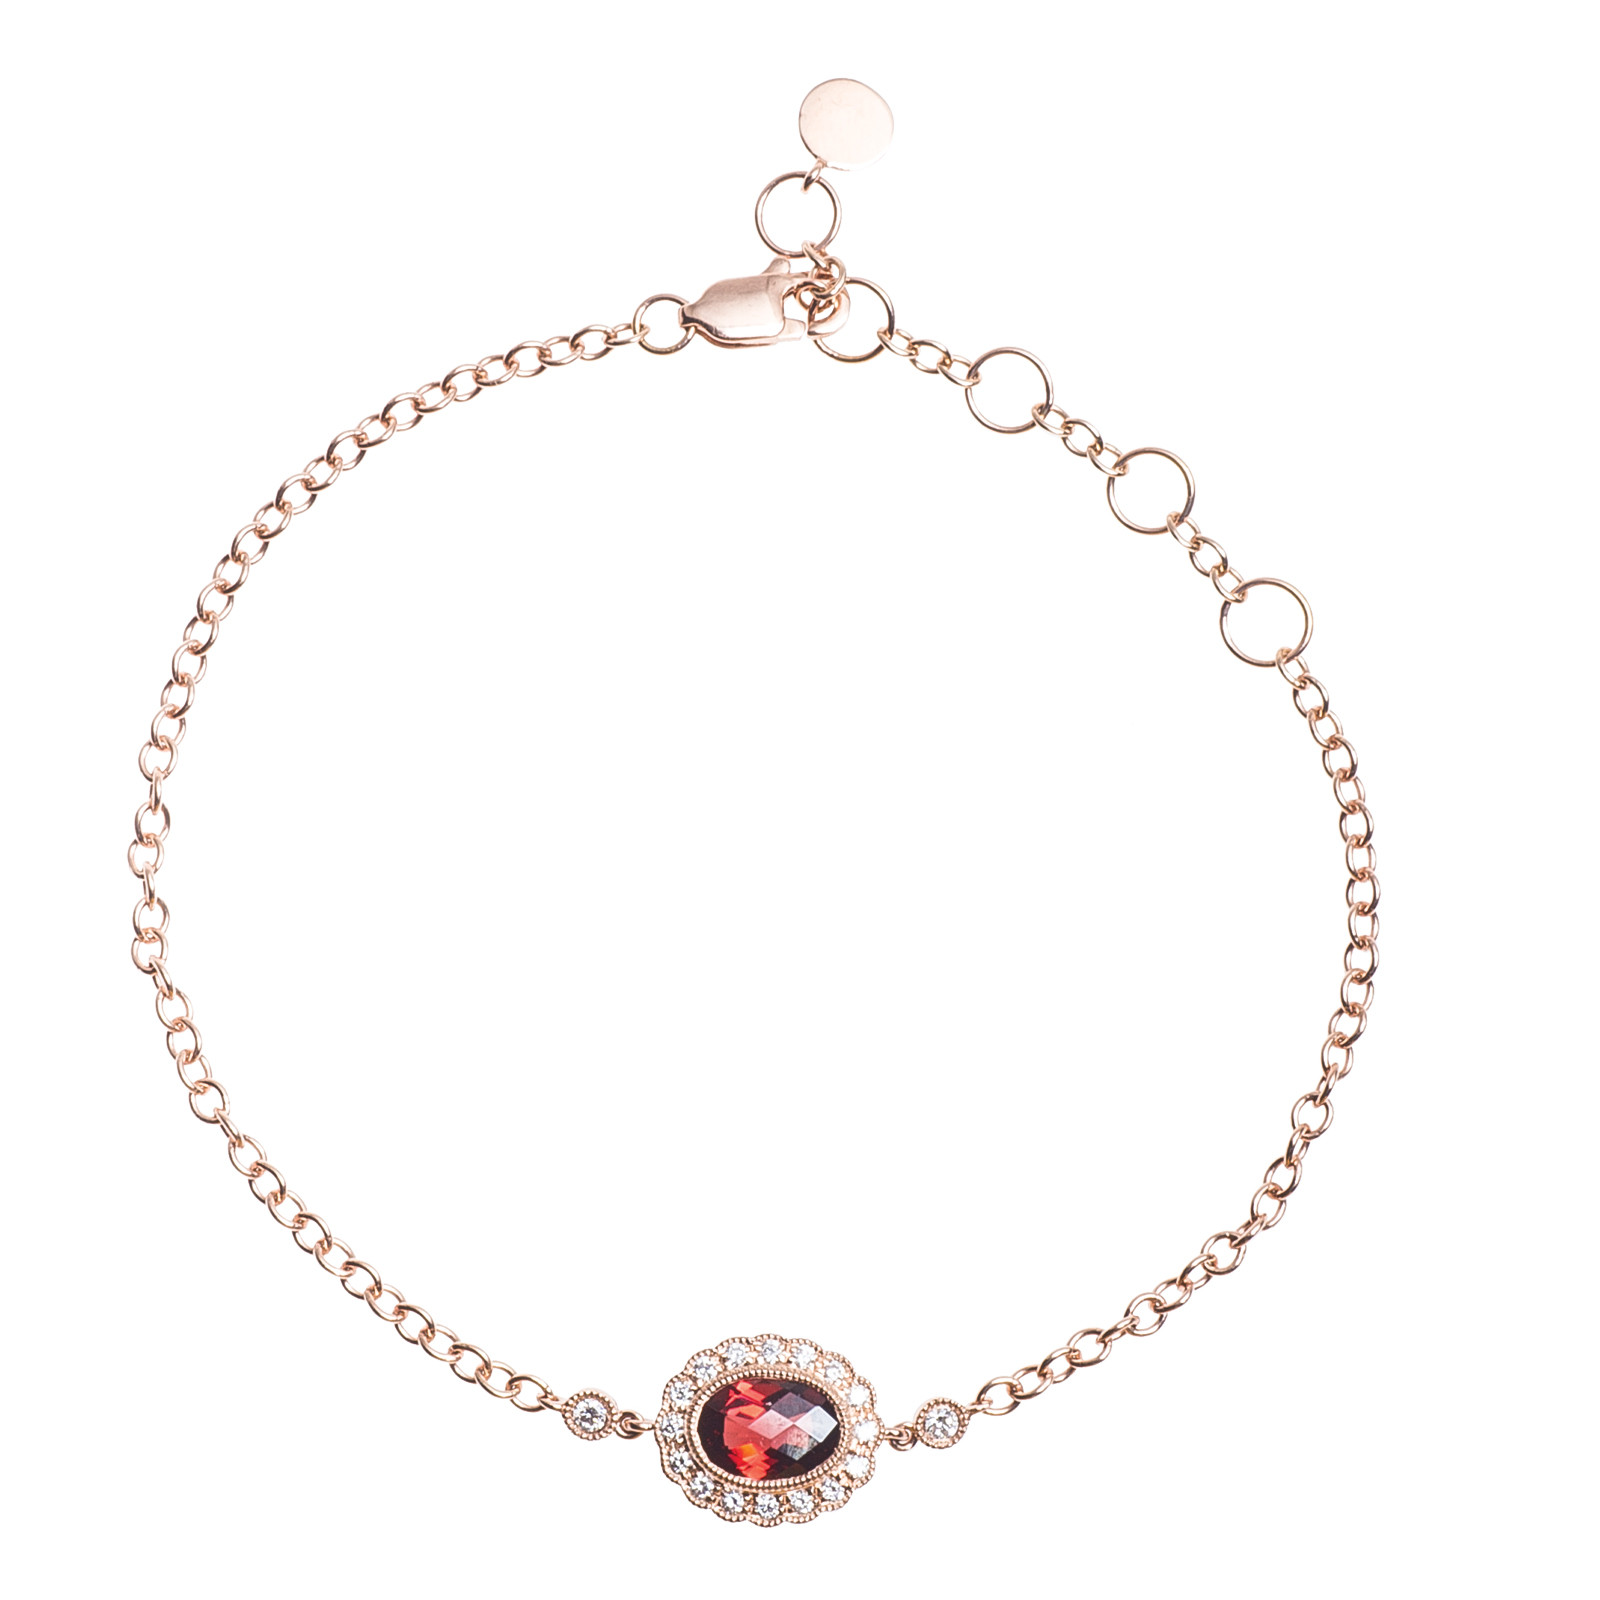 New 1.02 CTW Diamond & Garnet Bracelet